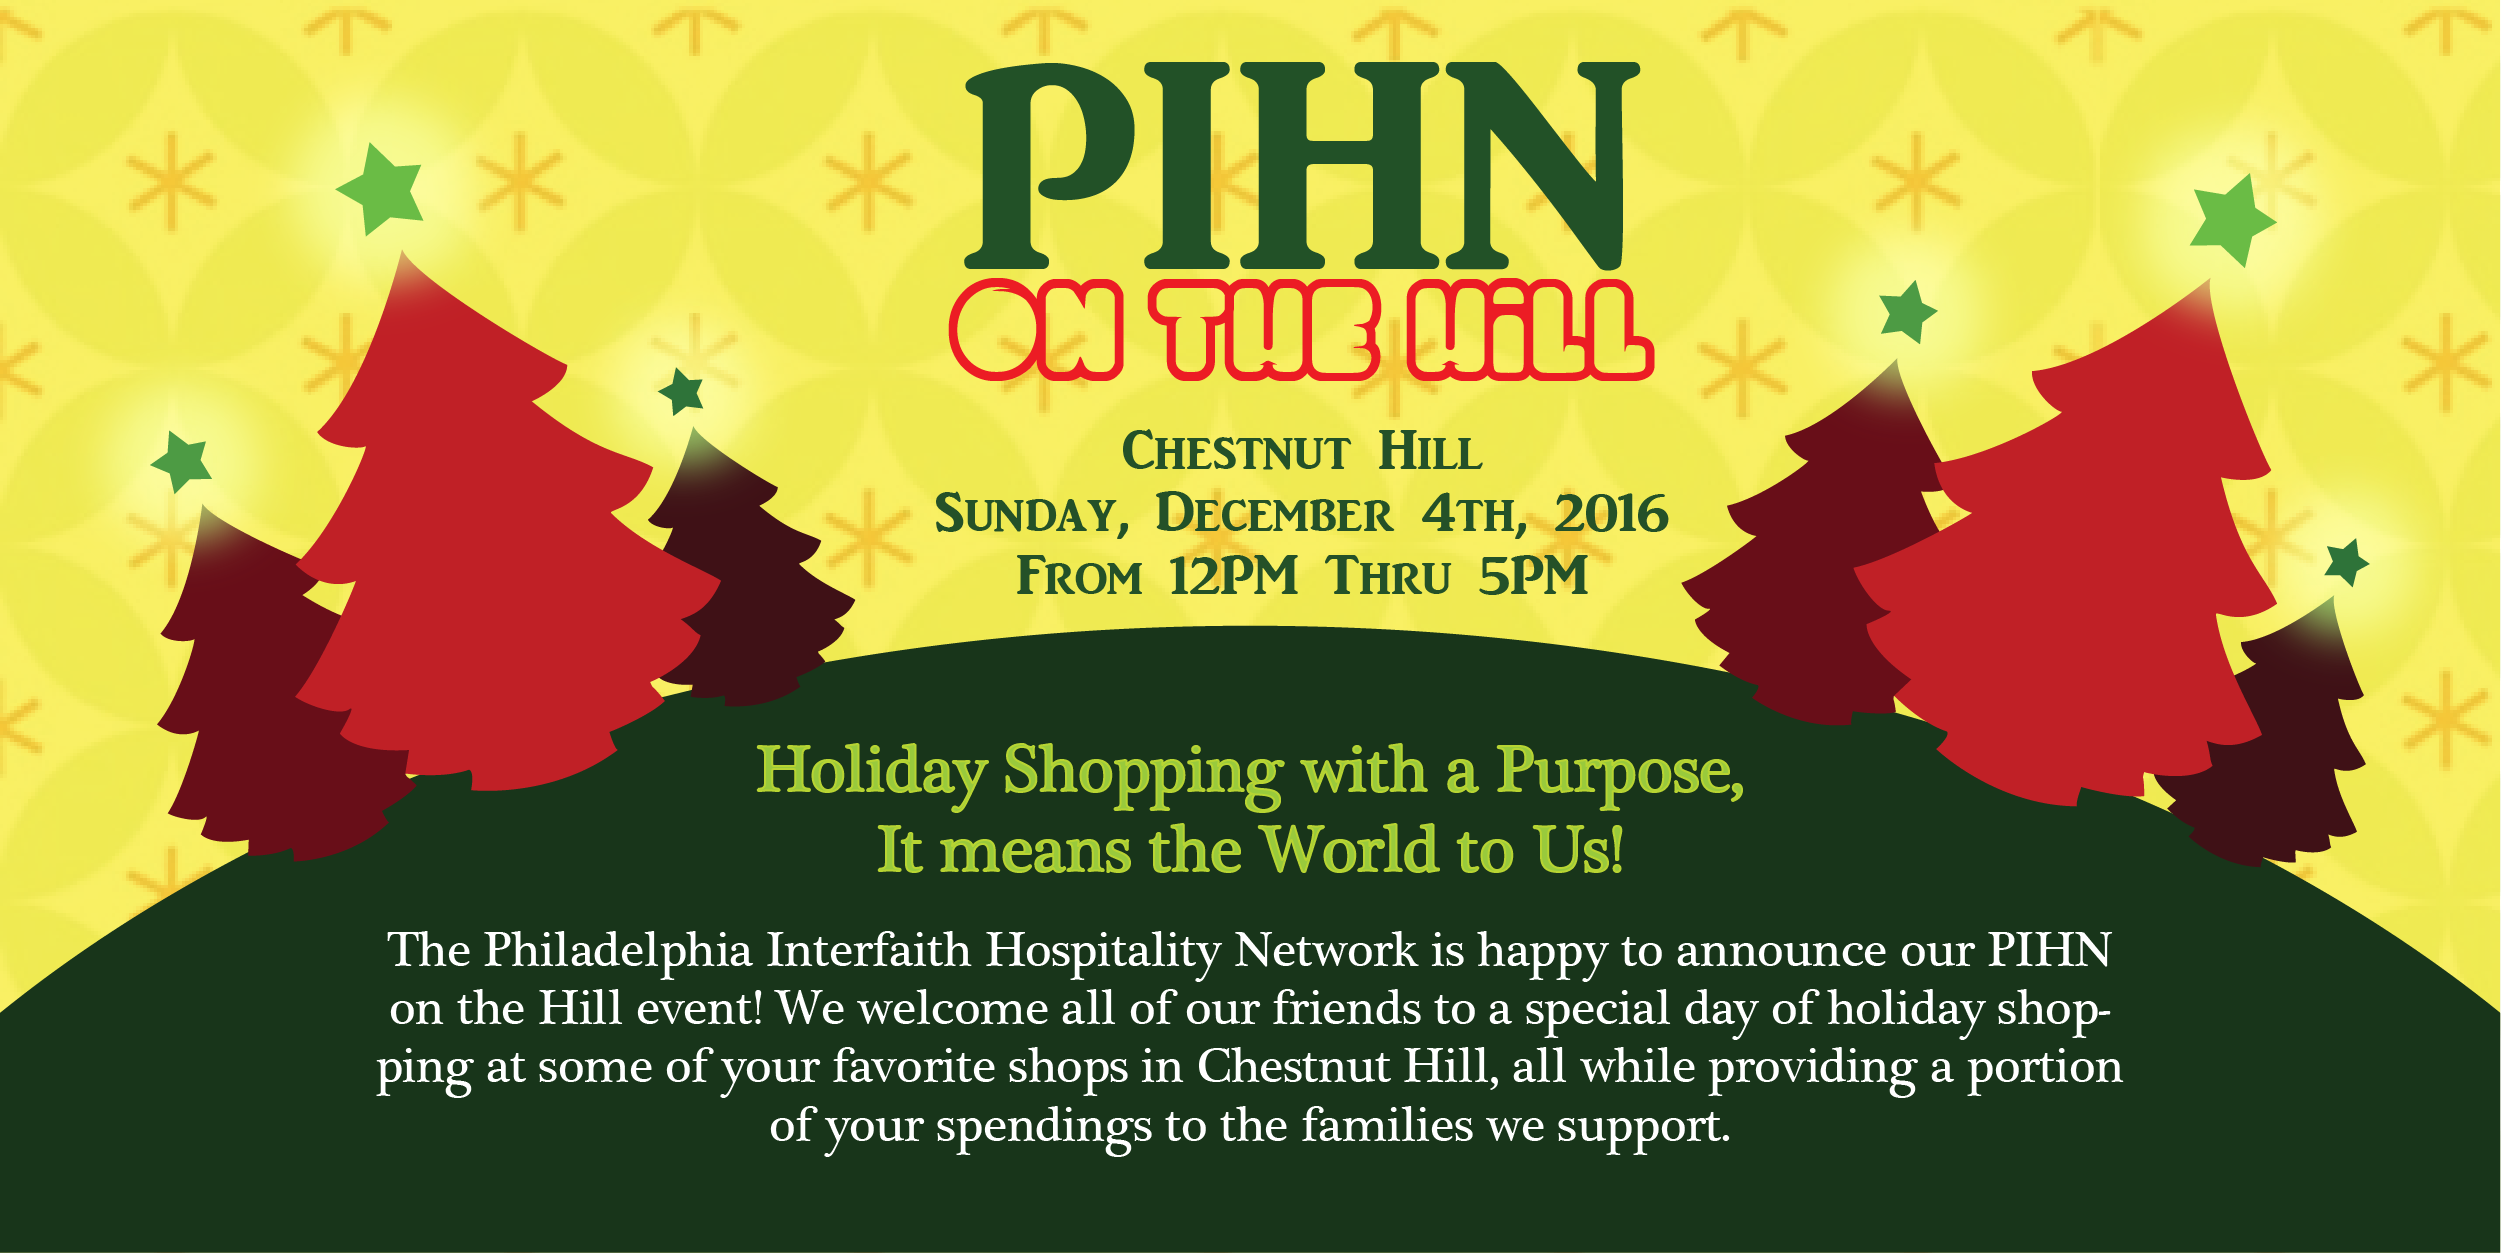 PIHN on the Hill, December 4th